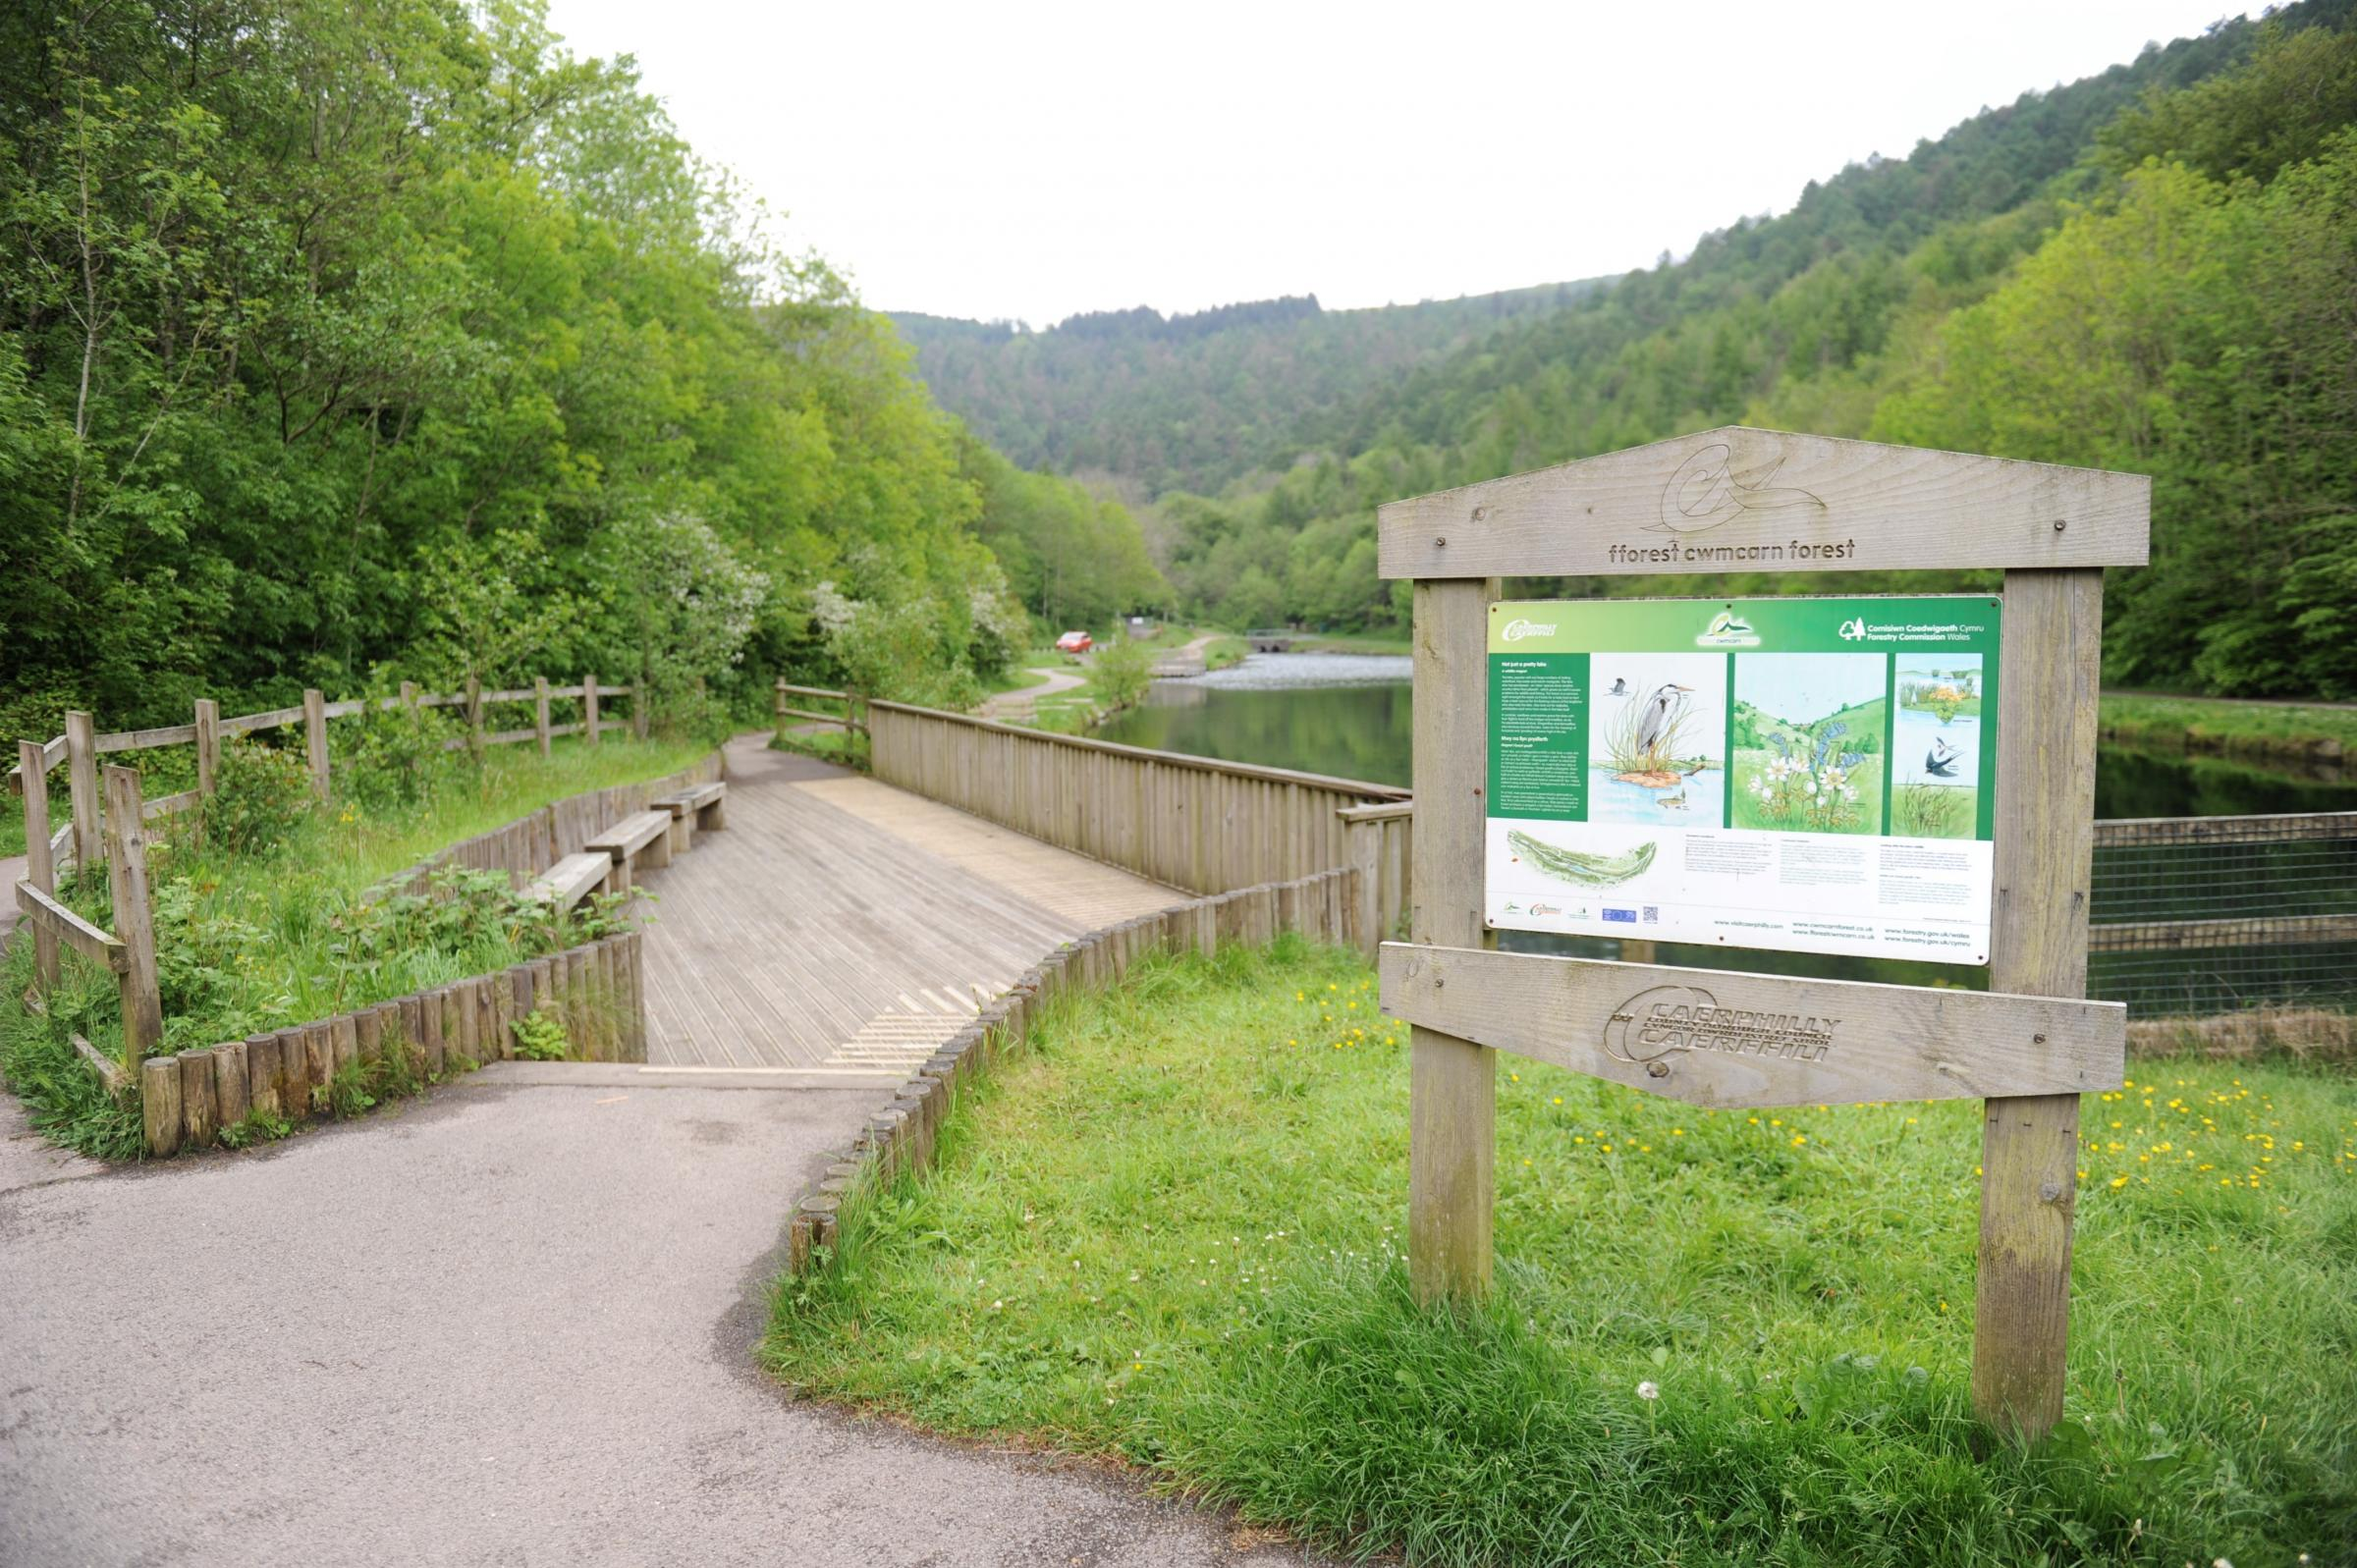 Cwmcarn Forest Drive - 'Nothing has hit British forestry like this before'